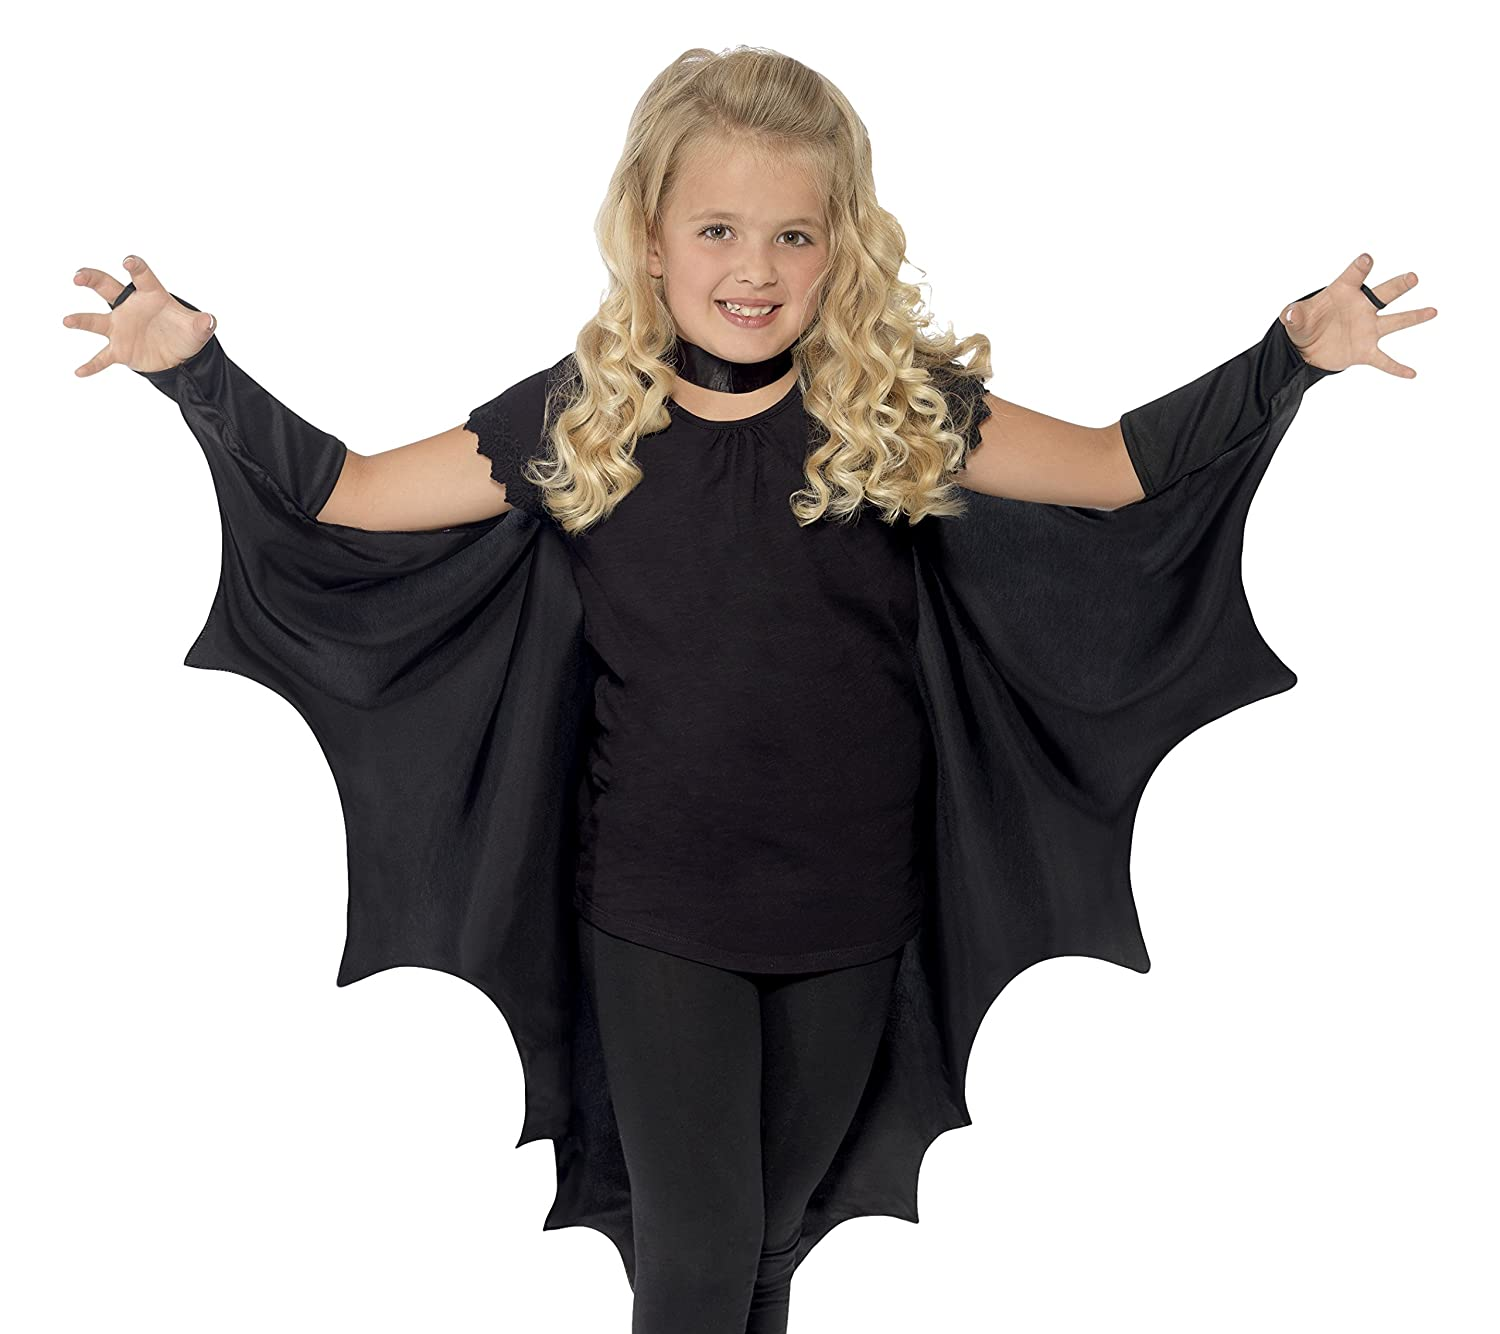 Amazon.com Smiffys Kids Unisex V&ire Bat Costume Wings Black One Size 44414 Smiffys Toys u0026 Games  sc 1 st  Amazon.com : vampire costume amazon  - Germanpascual.Com